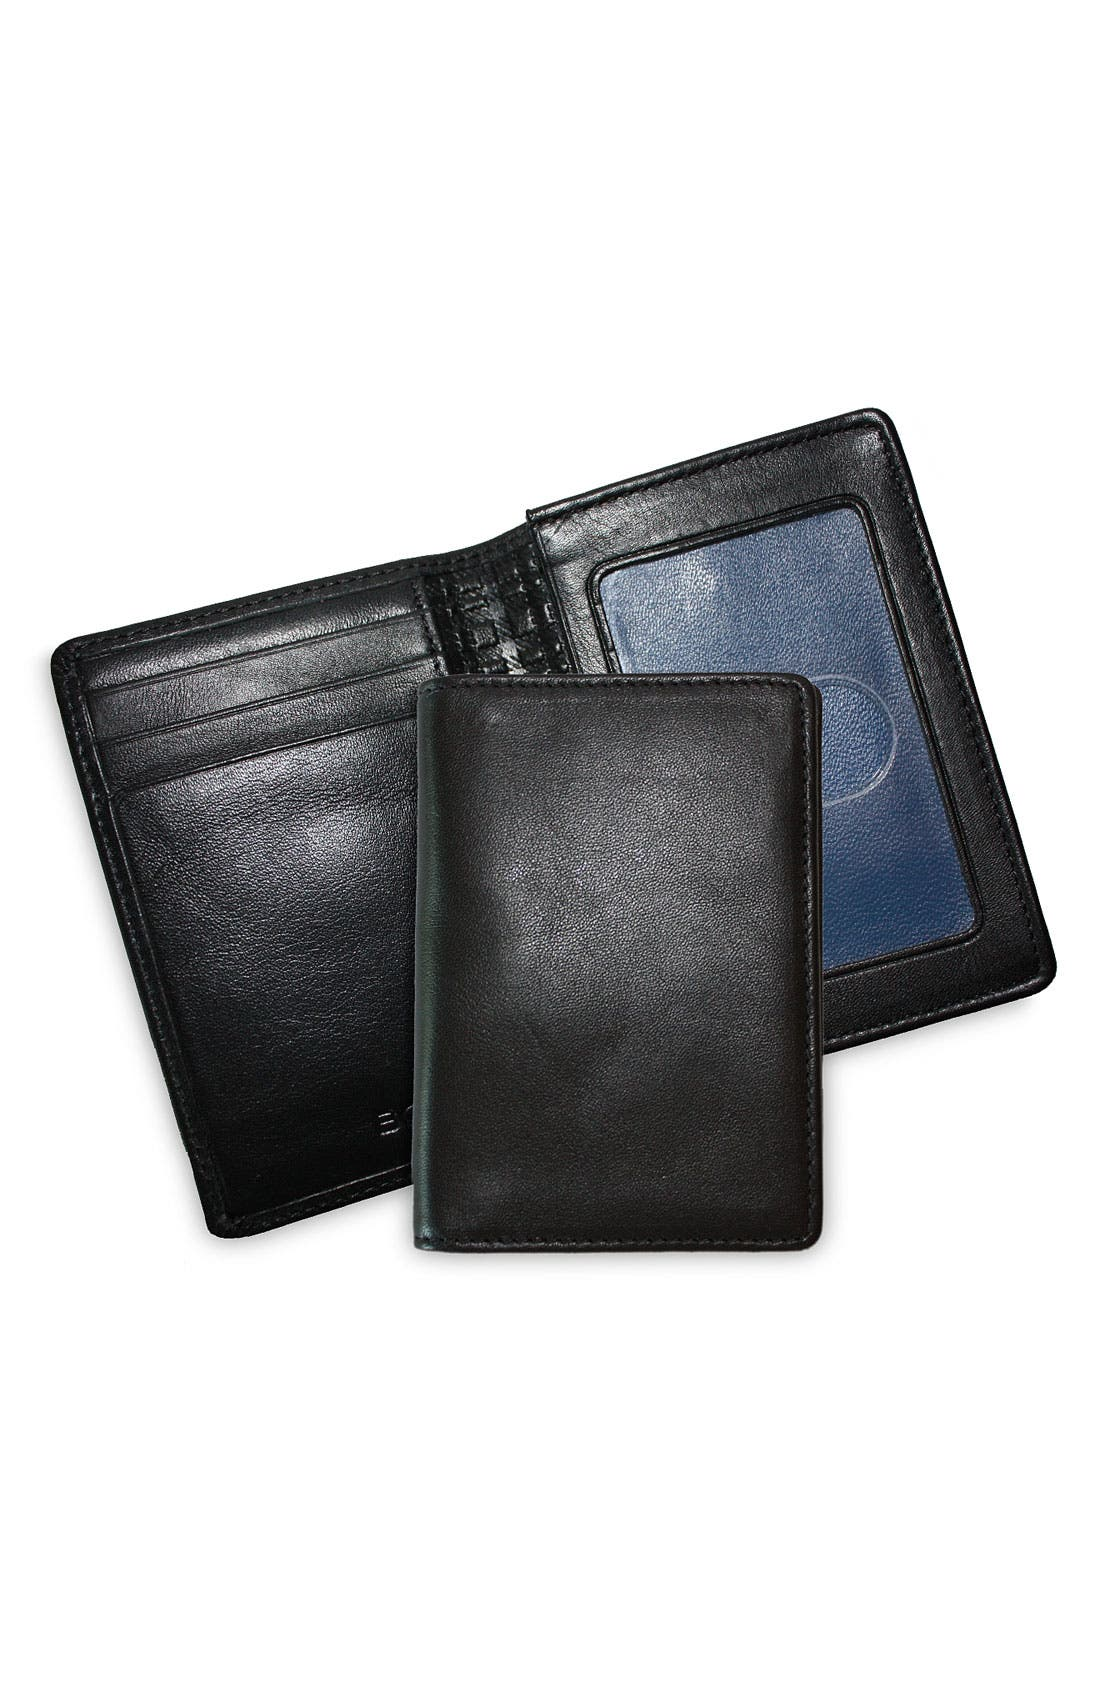 Main Image - Boconi 'Deluxe' Card Case